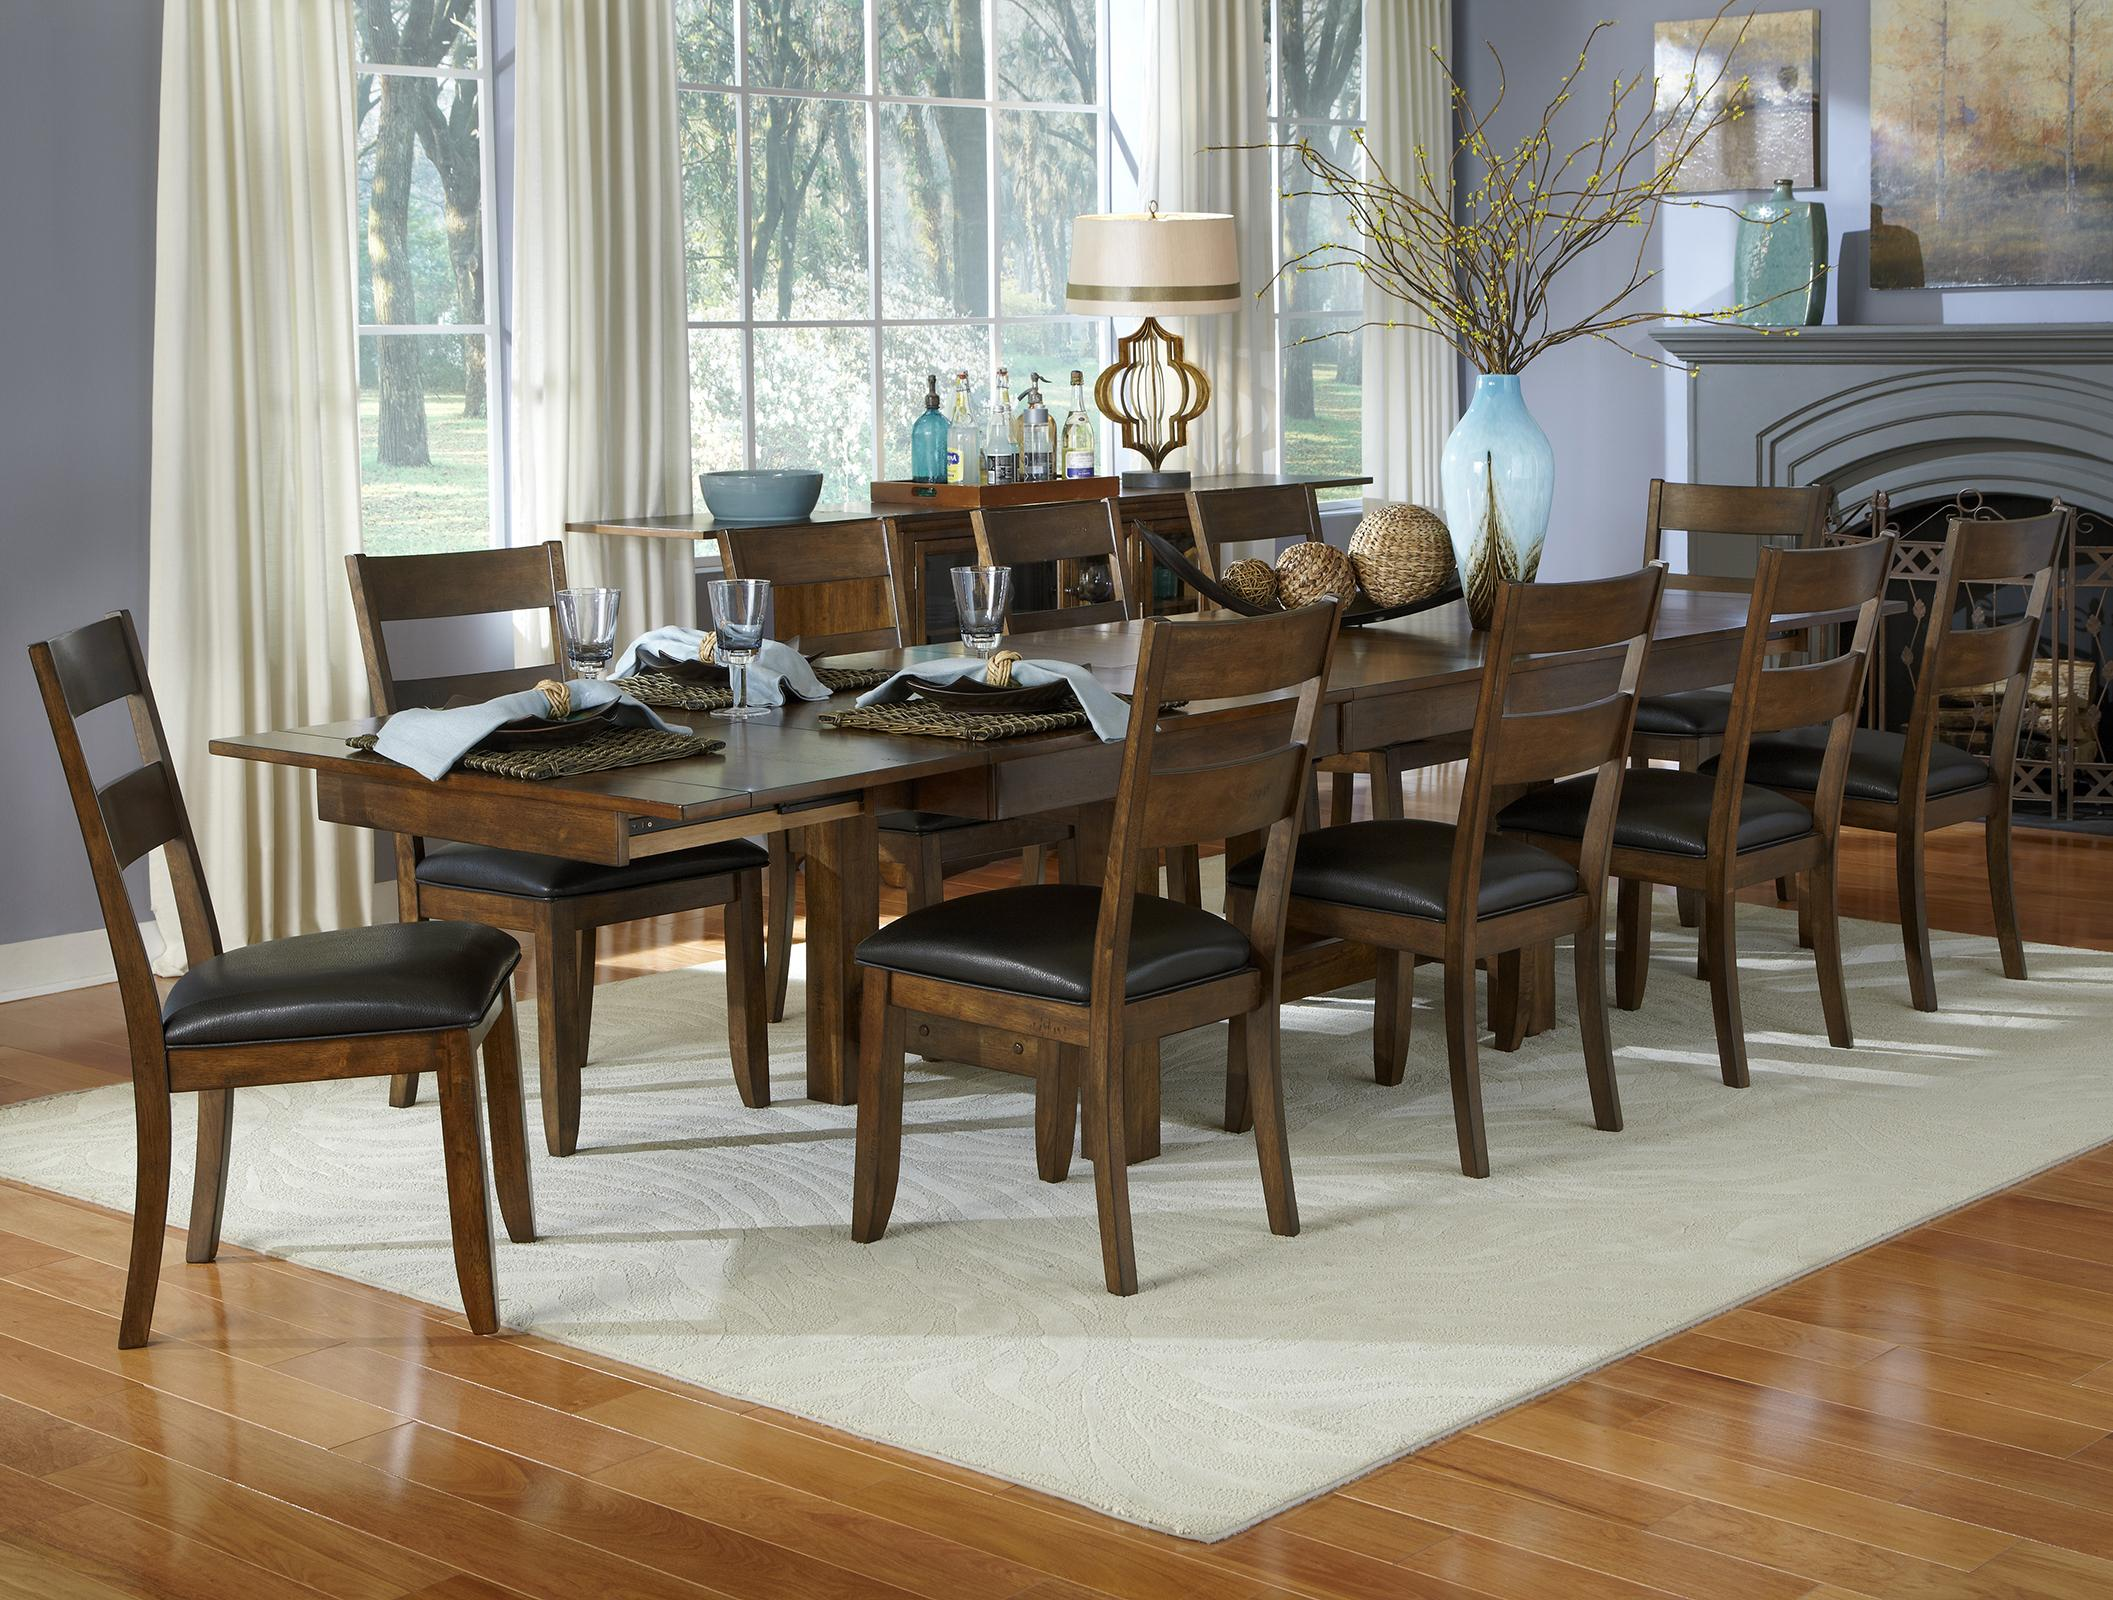 AAmerica Mariposa 11 Piece Table and Chairs Set  - Item Number: MRP-RW-6-08-0+10x2-55-K